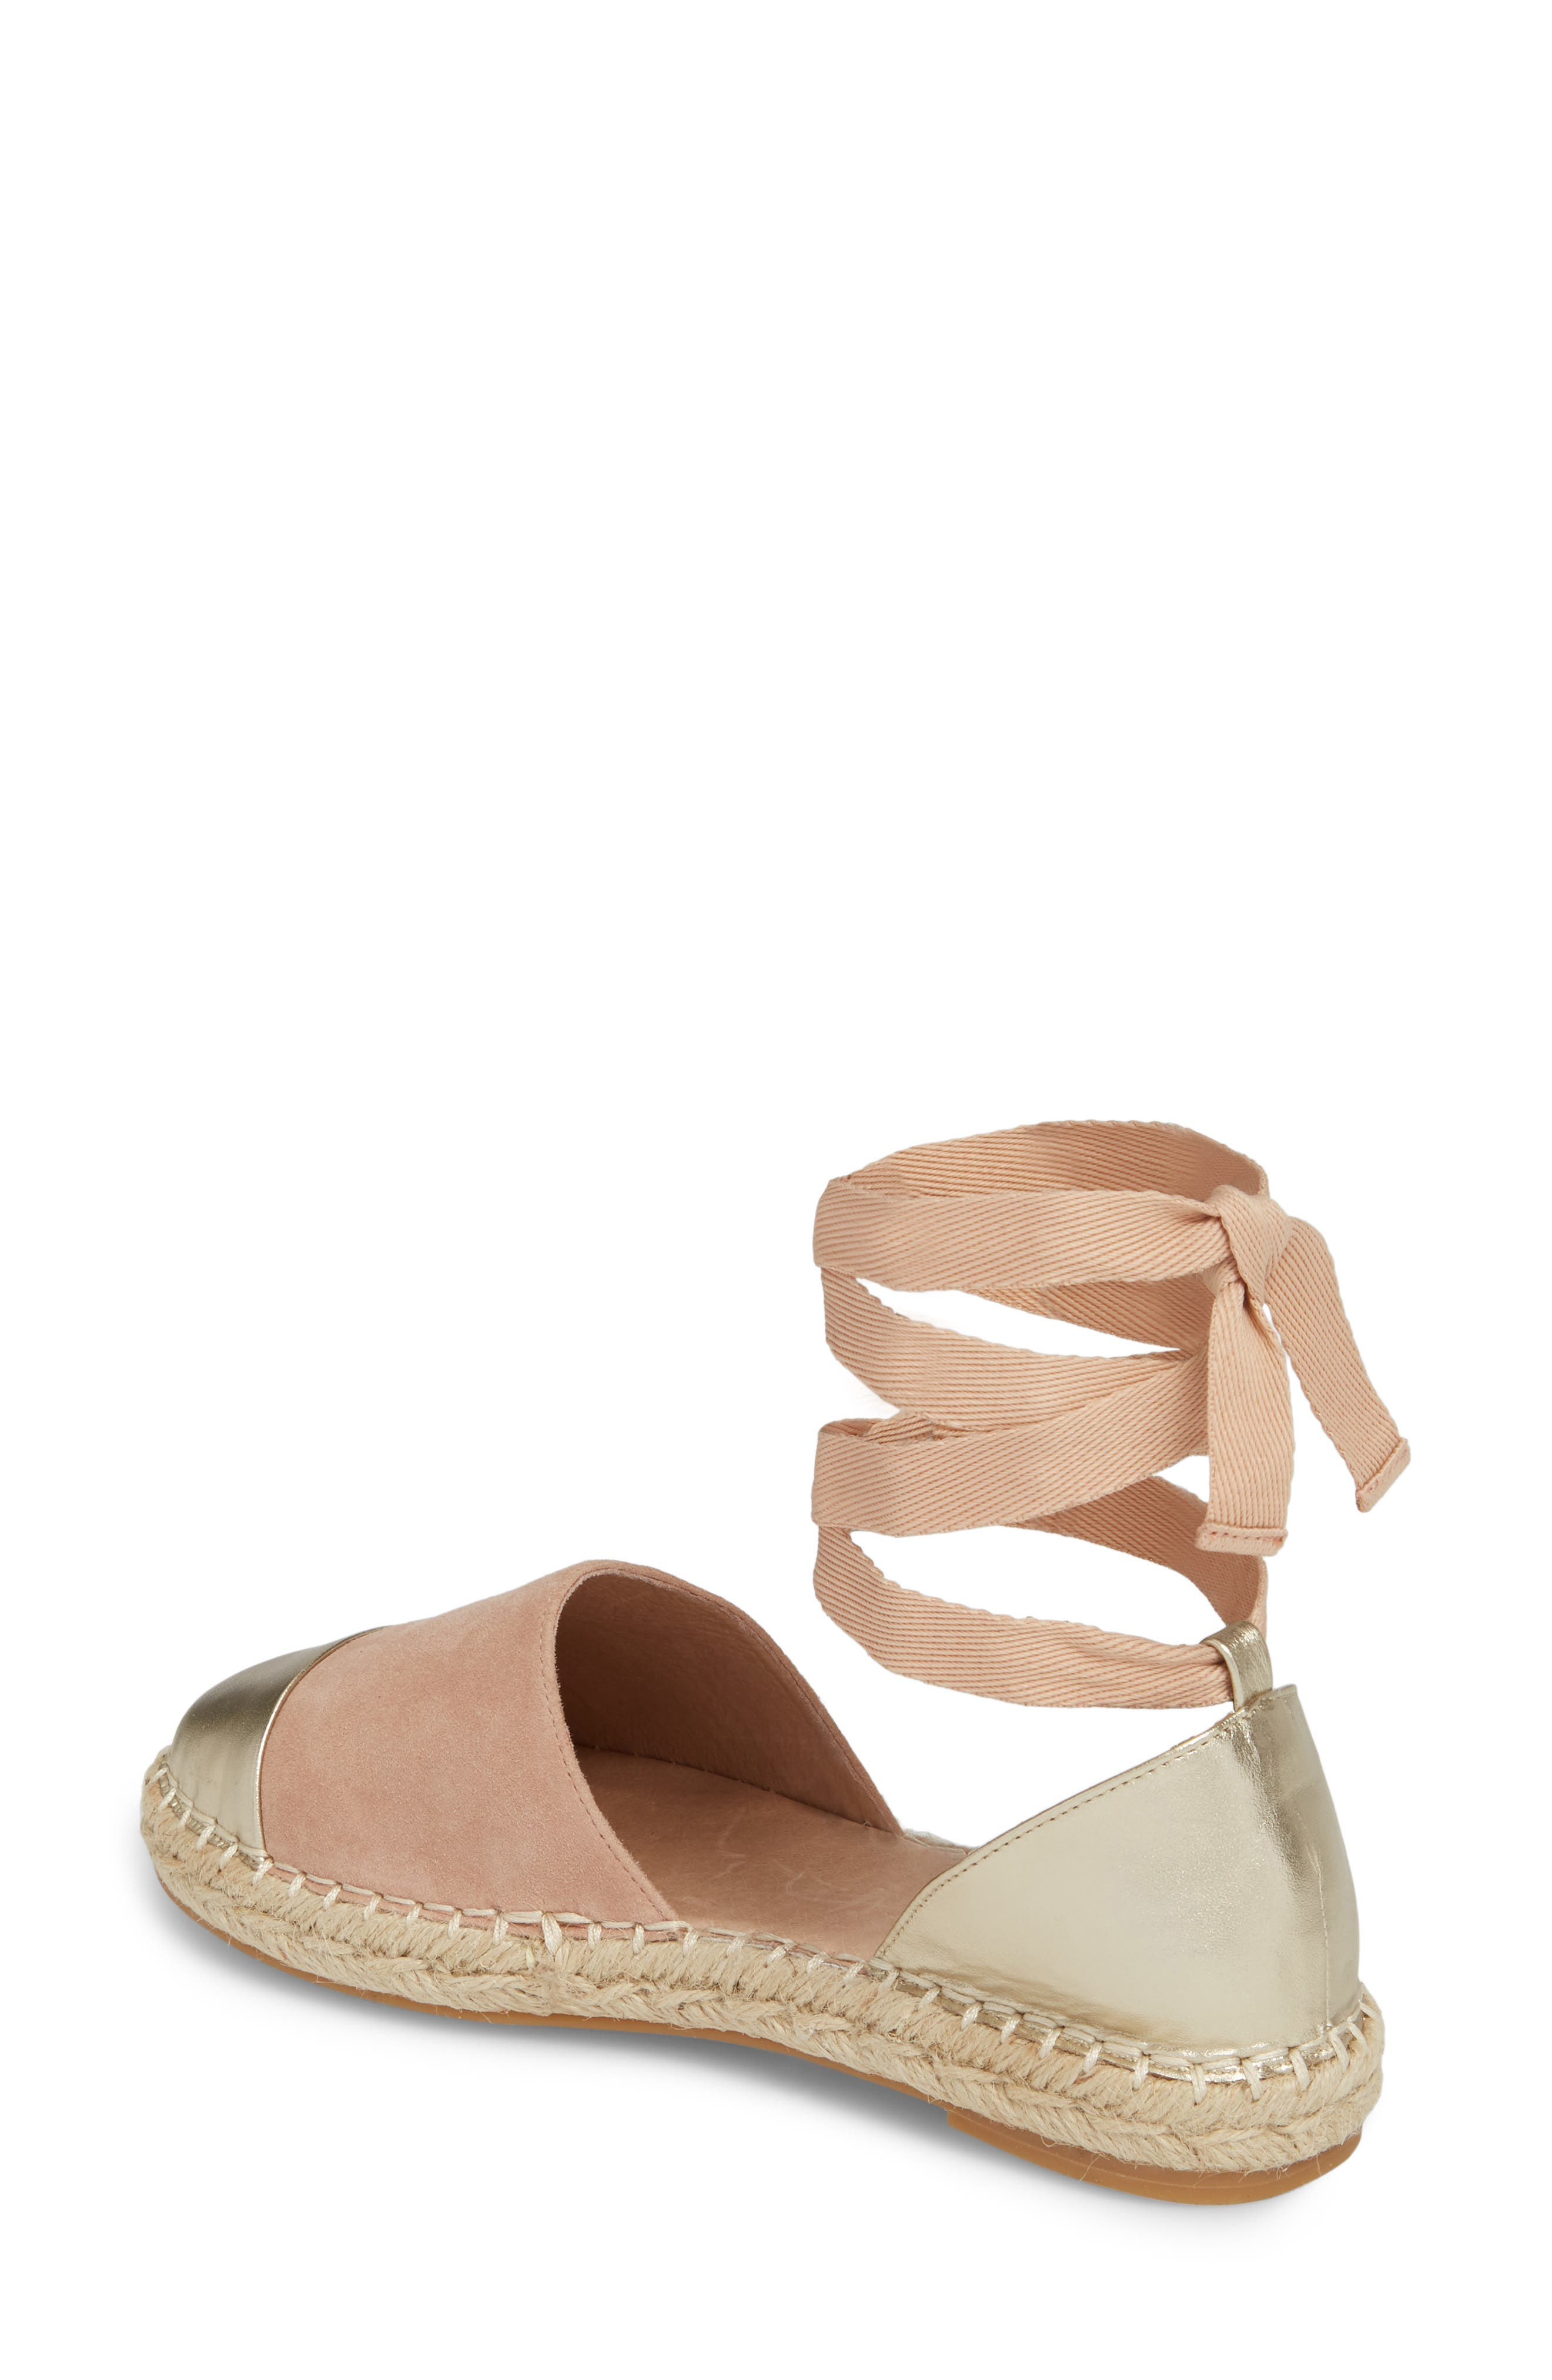 Cain Ankle-Tie Sandal,                             Alternate thumbnail 2, color,                             260